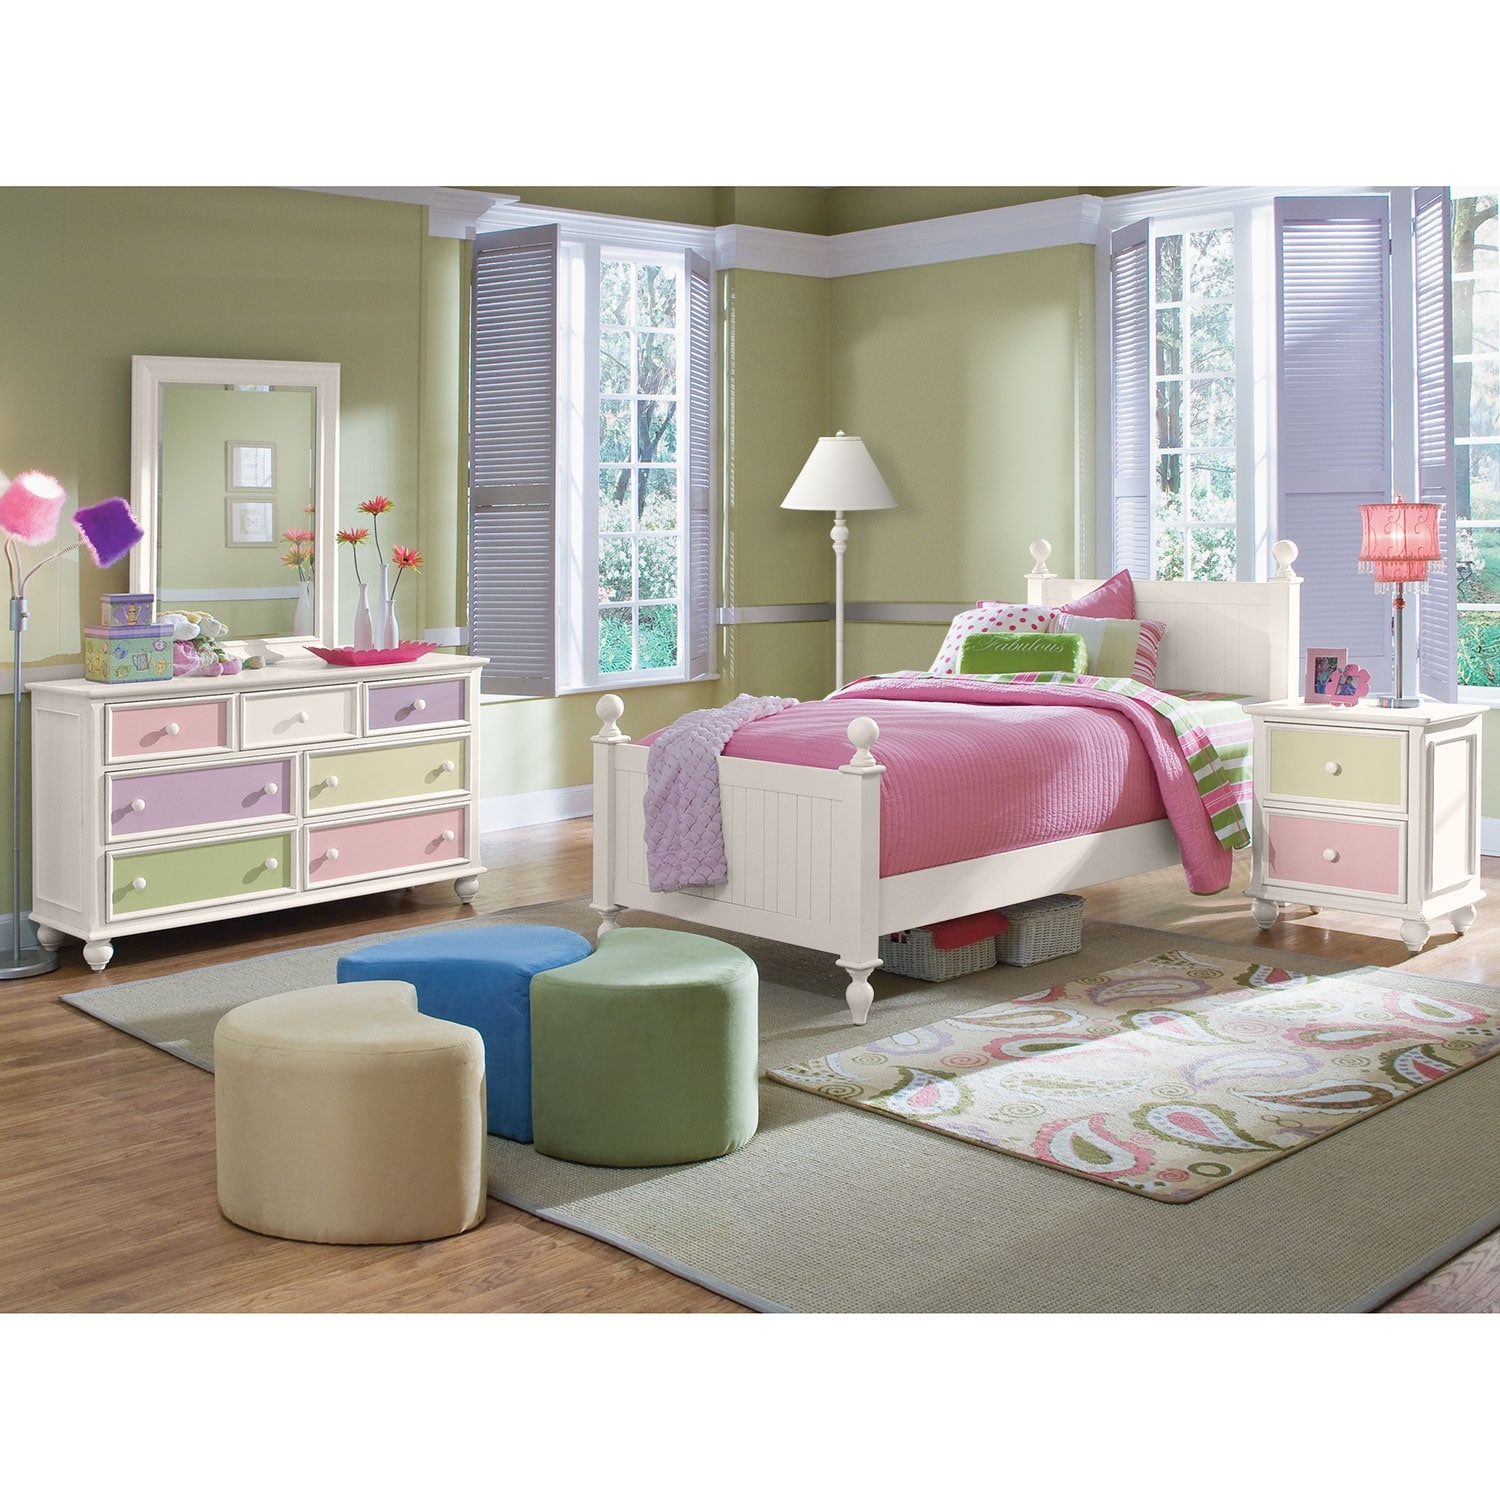 White twin bed set -  Twin Bedroom Set White Hover To Zoom